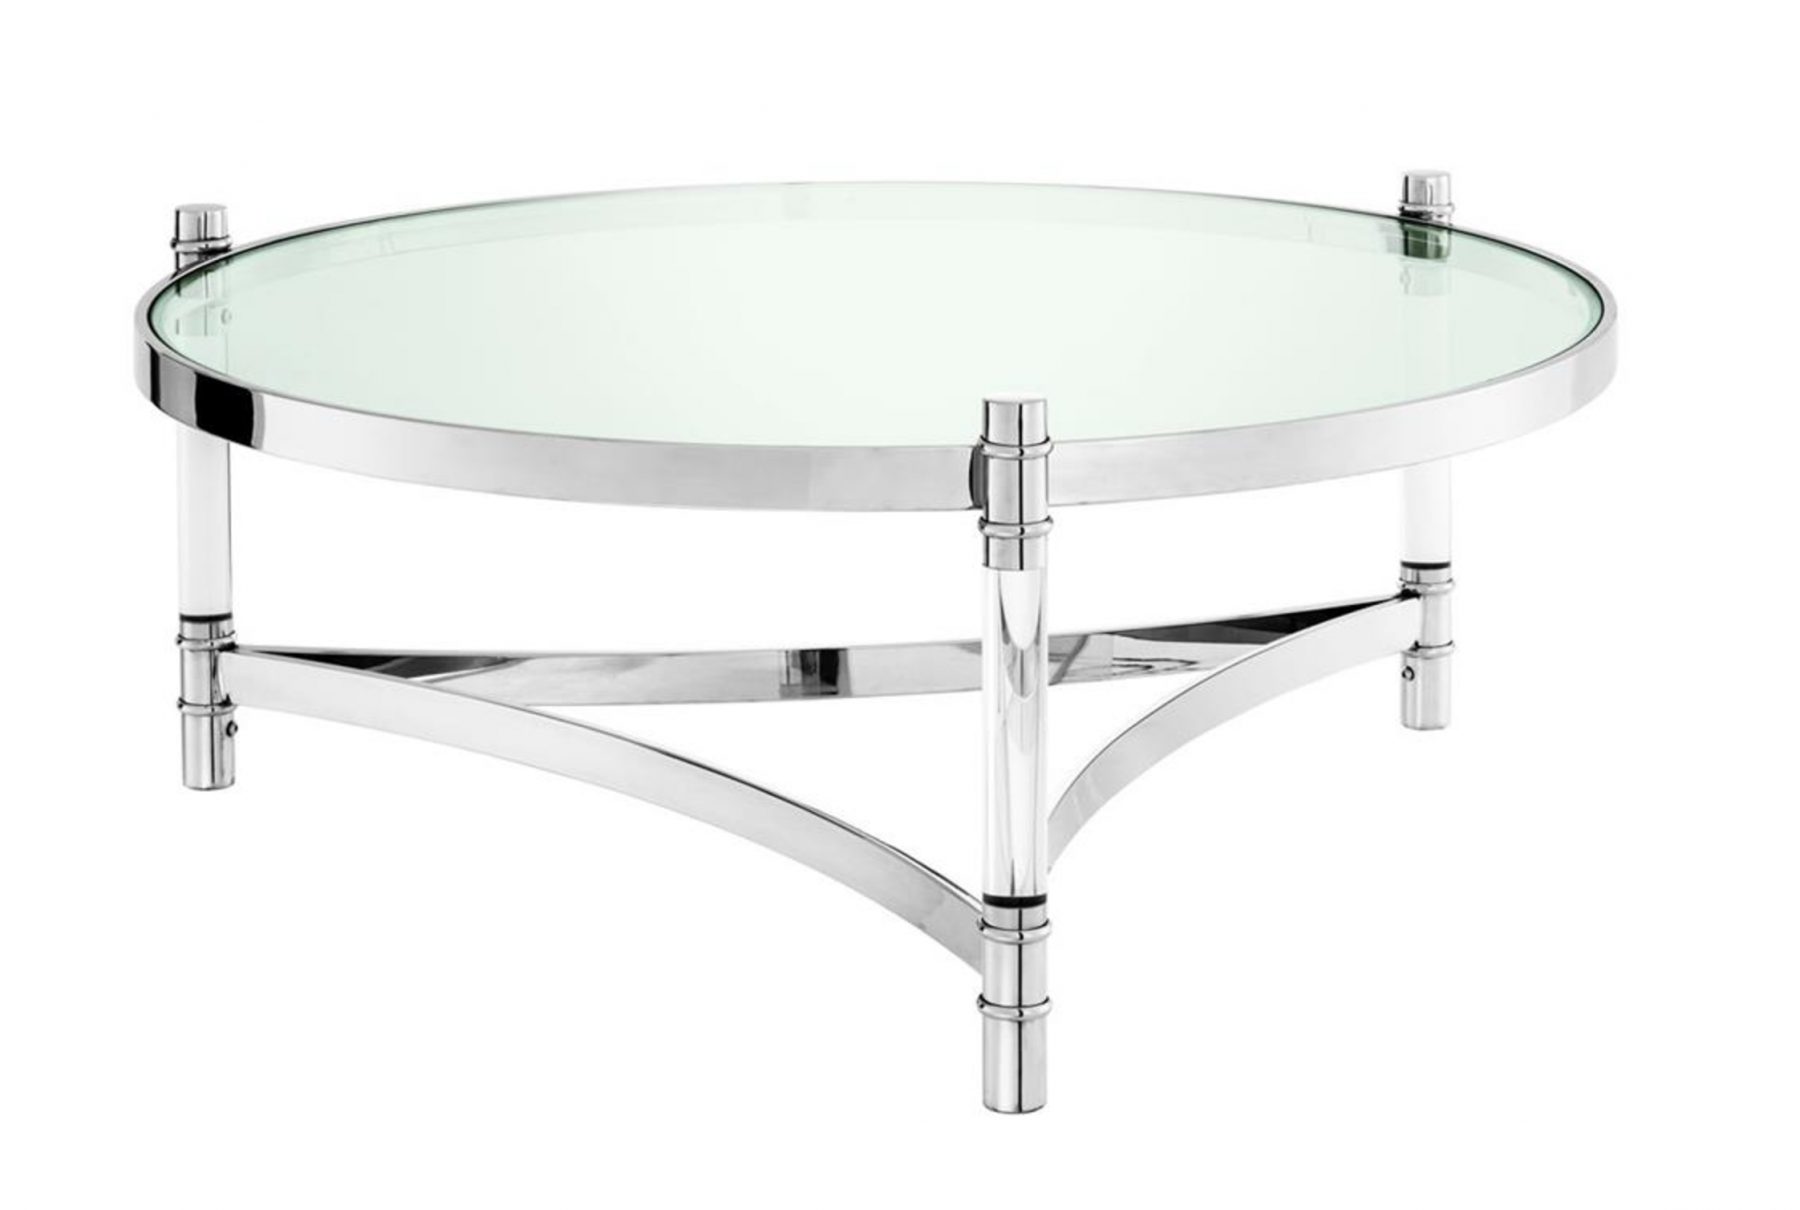 Trento Stainless Steel Coffee Table Shop Now